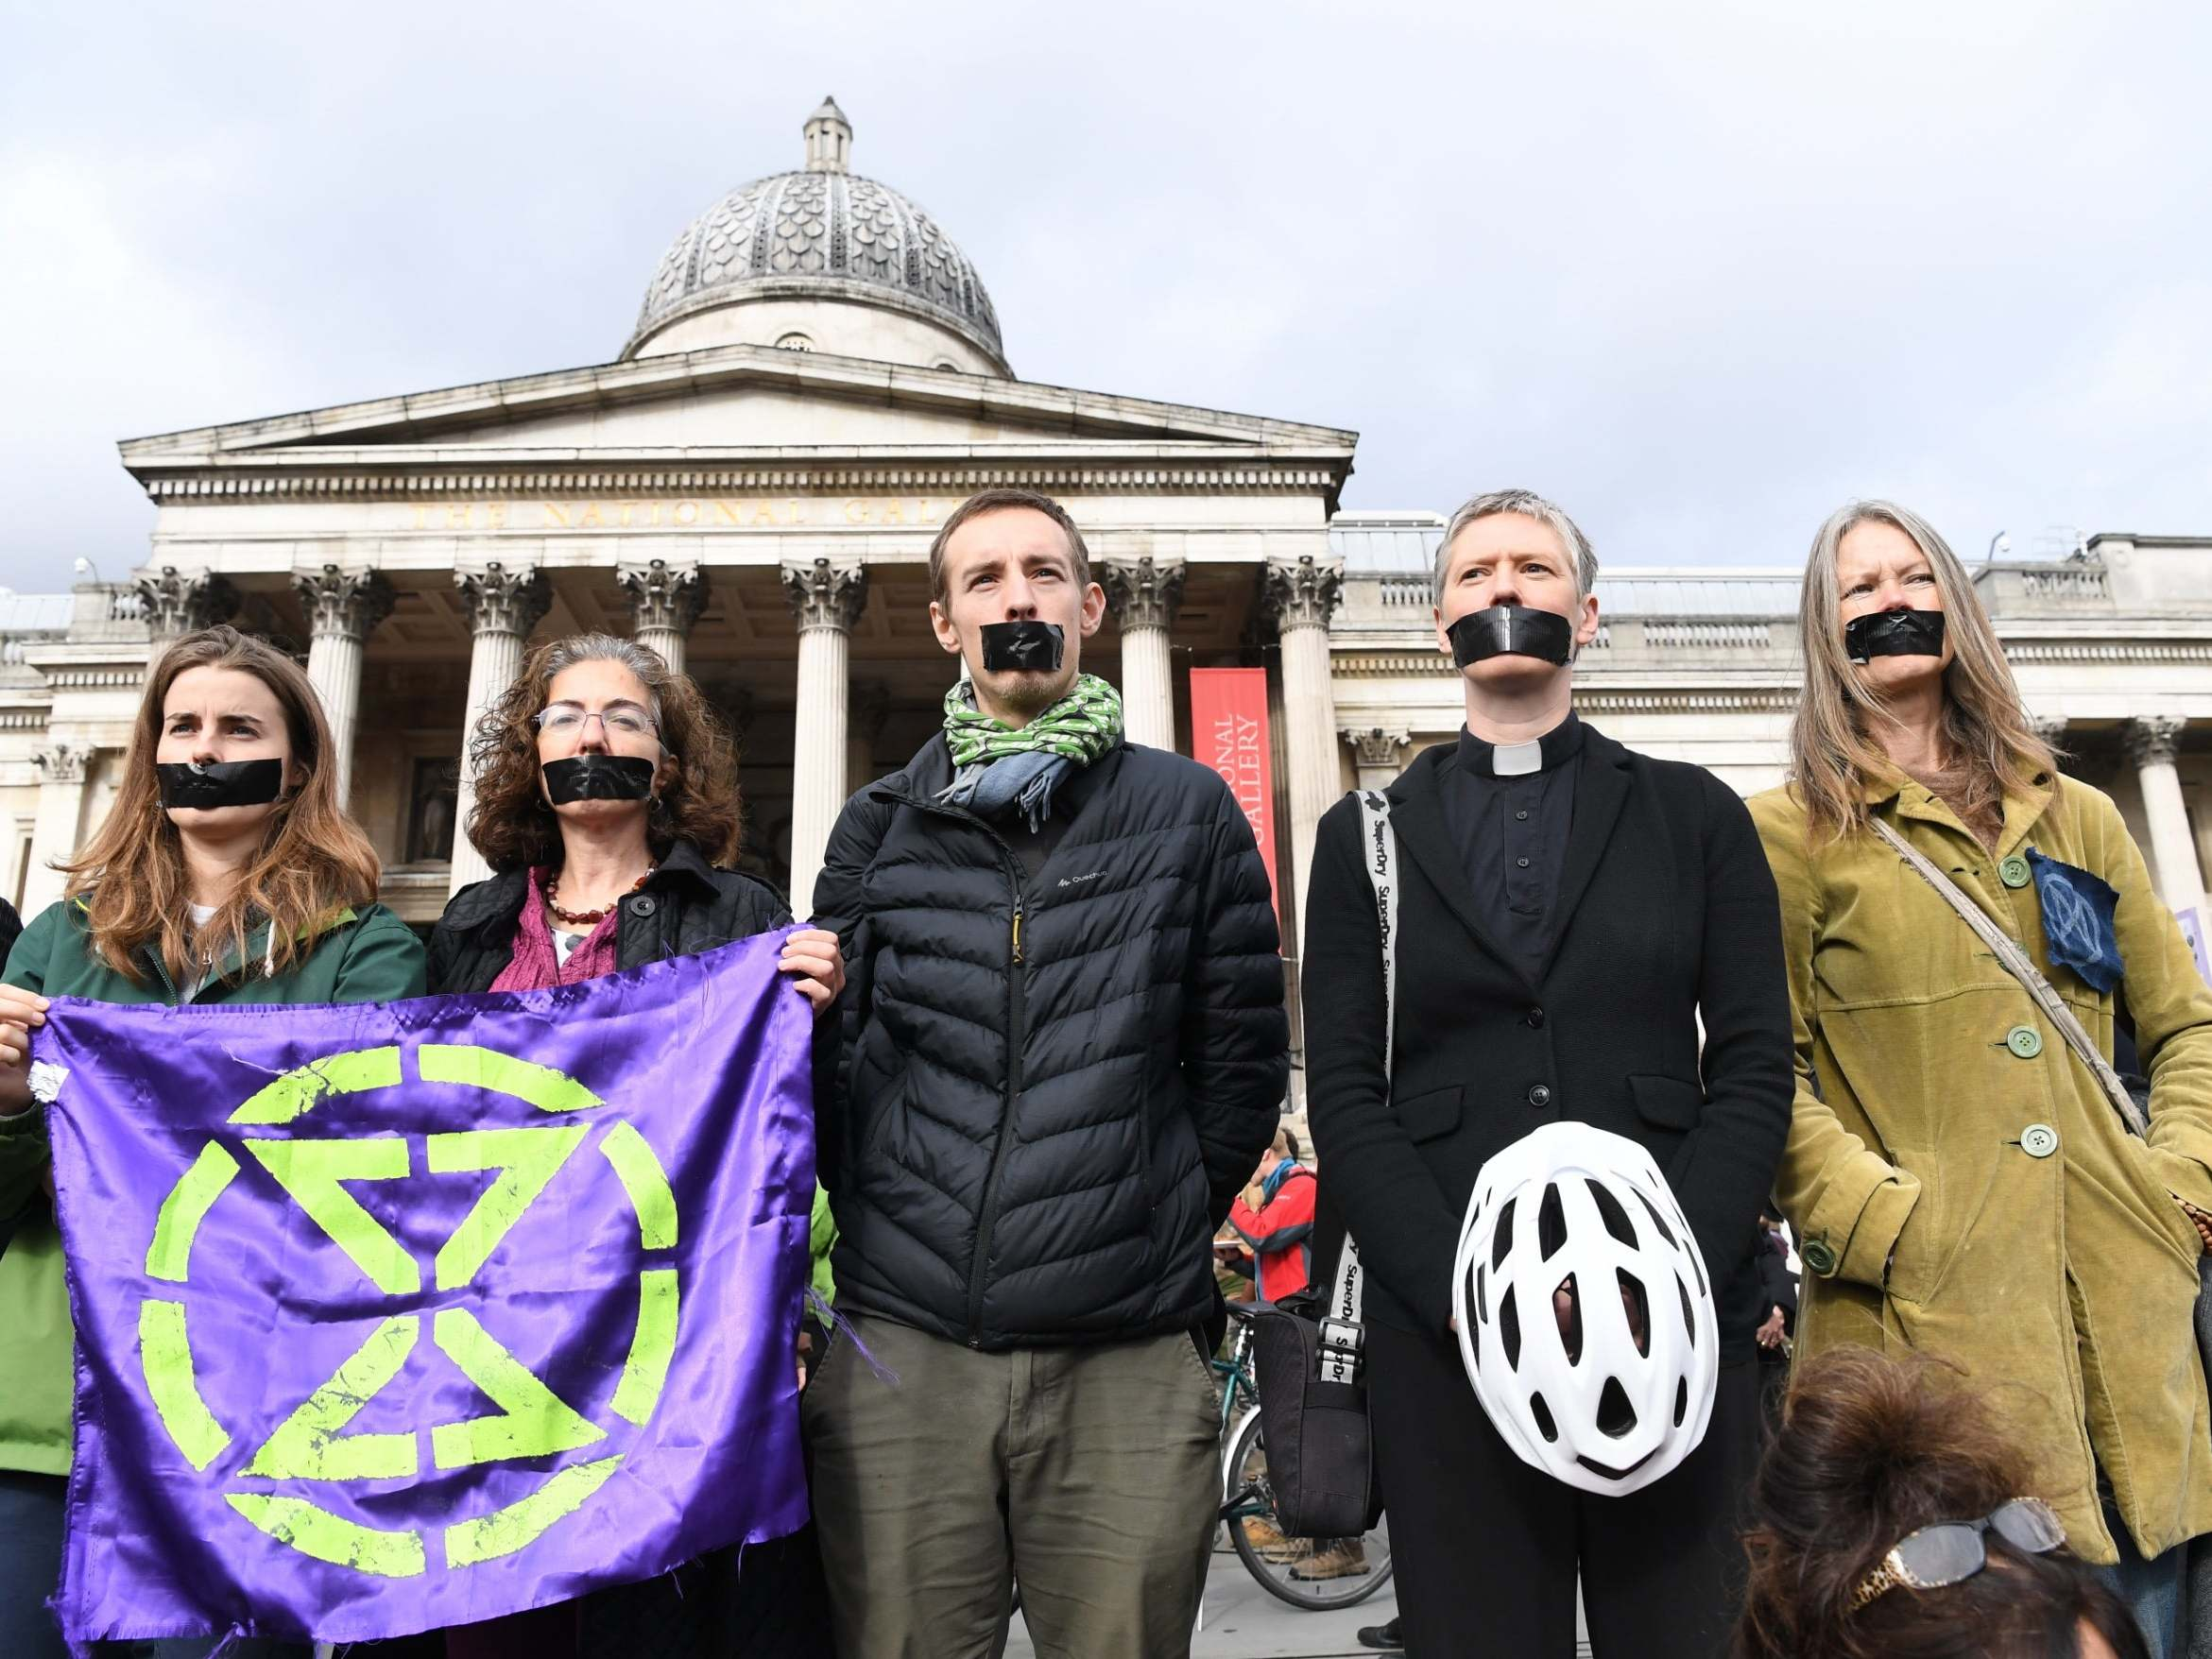 Extinction Rebellion protesters to spray paint Westminster during 'red handed' march